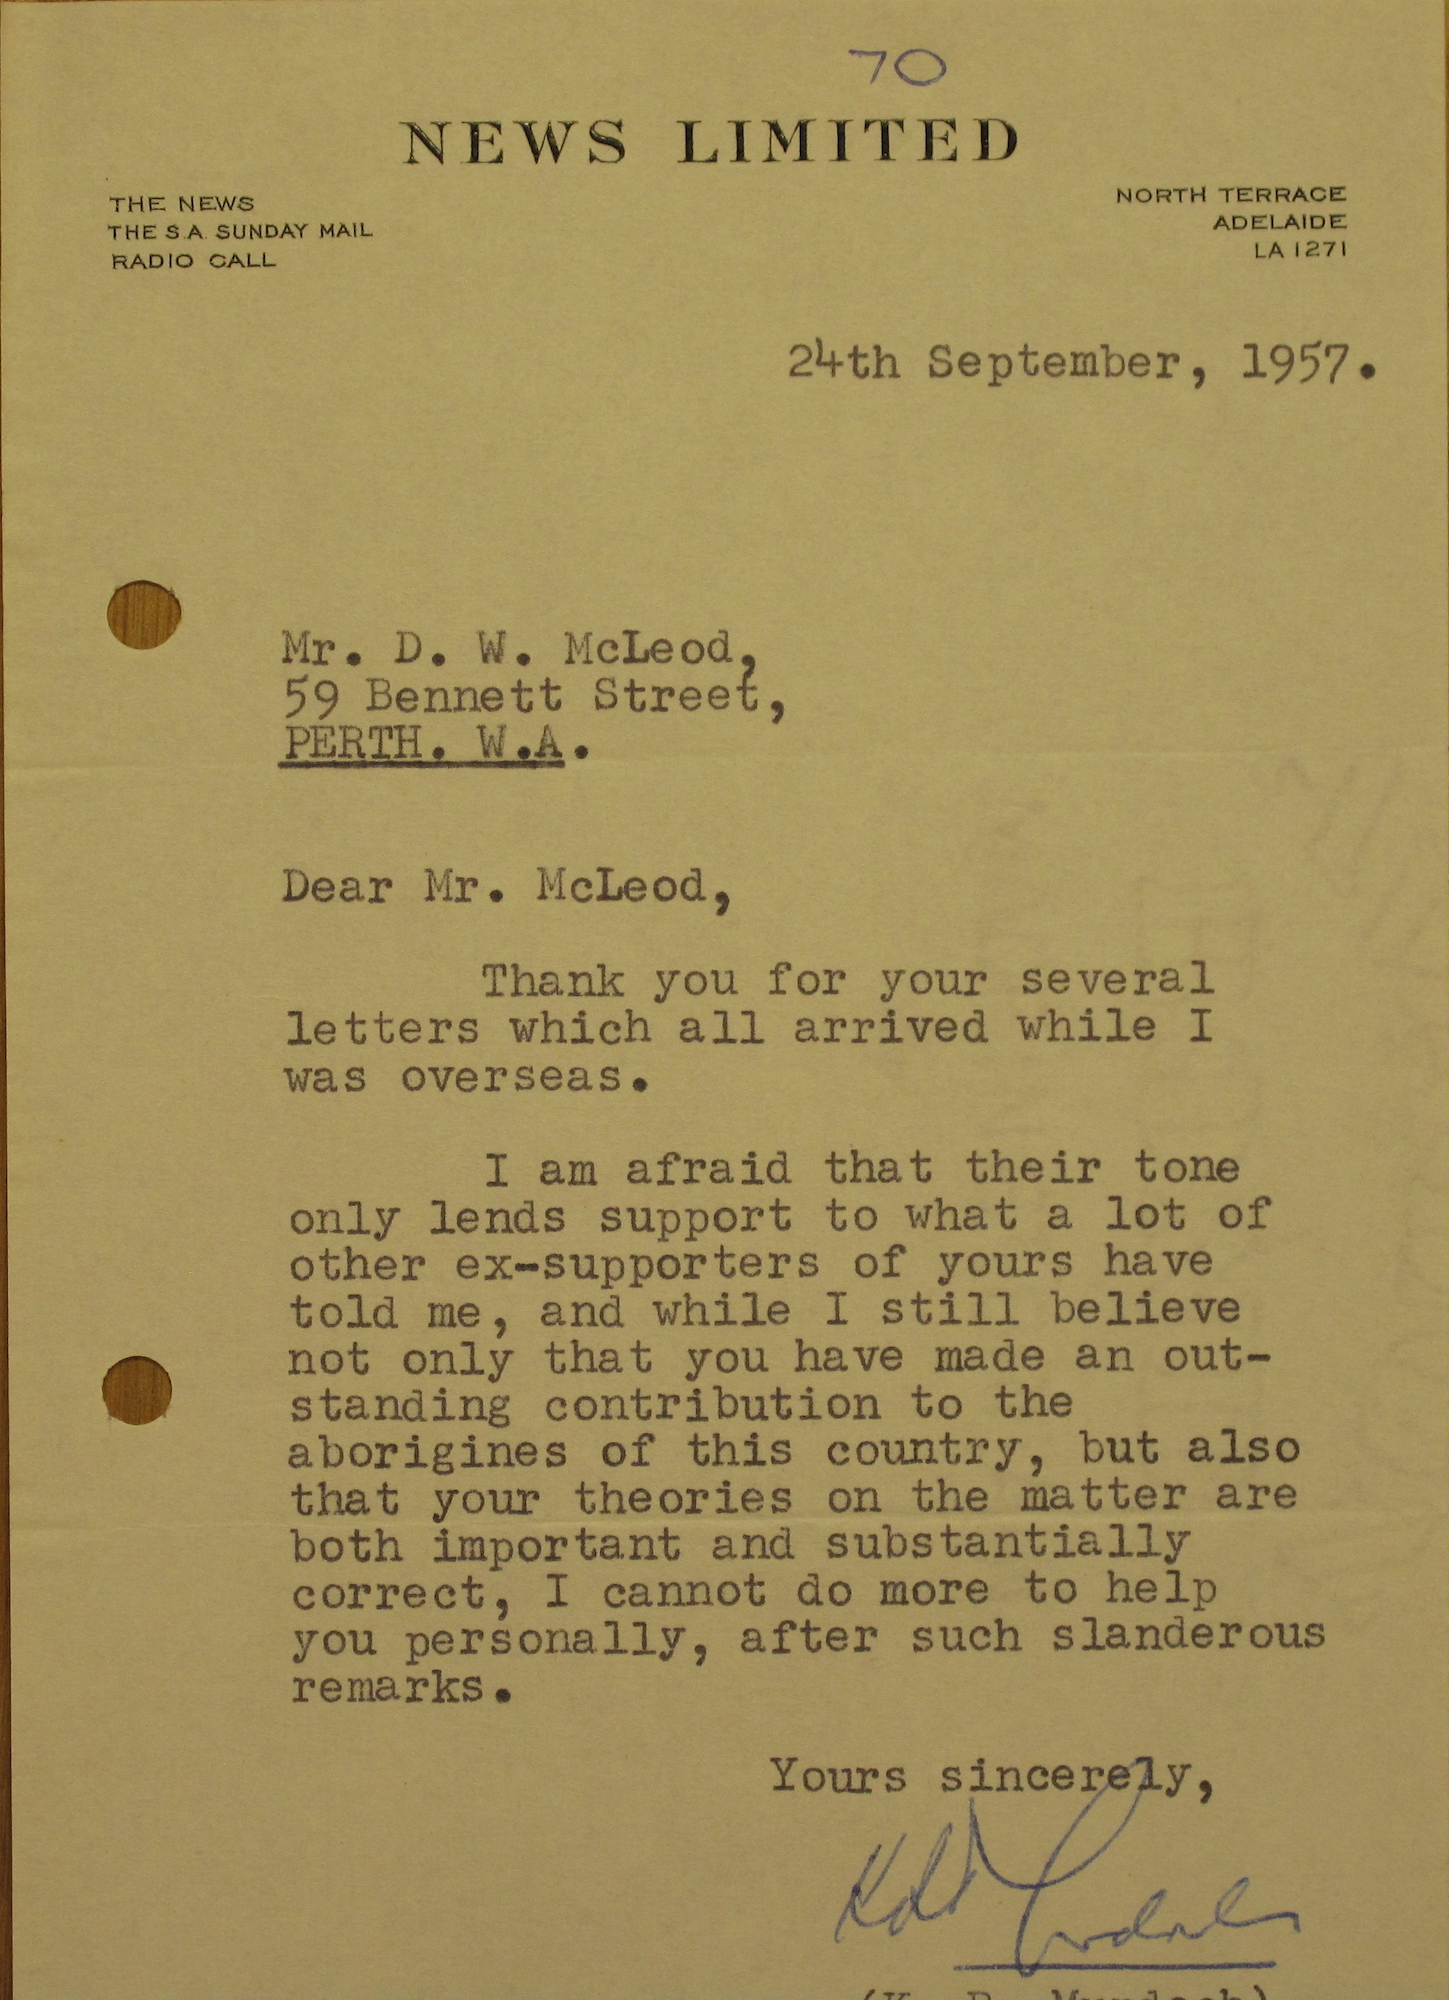 Rupert Murdoch to Don McLeod, 24 September 1957